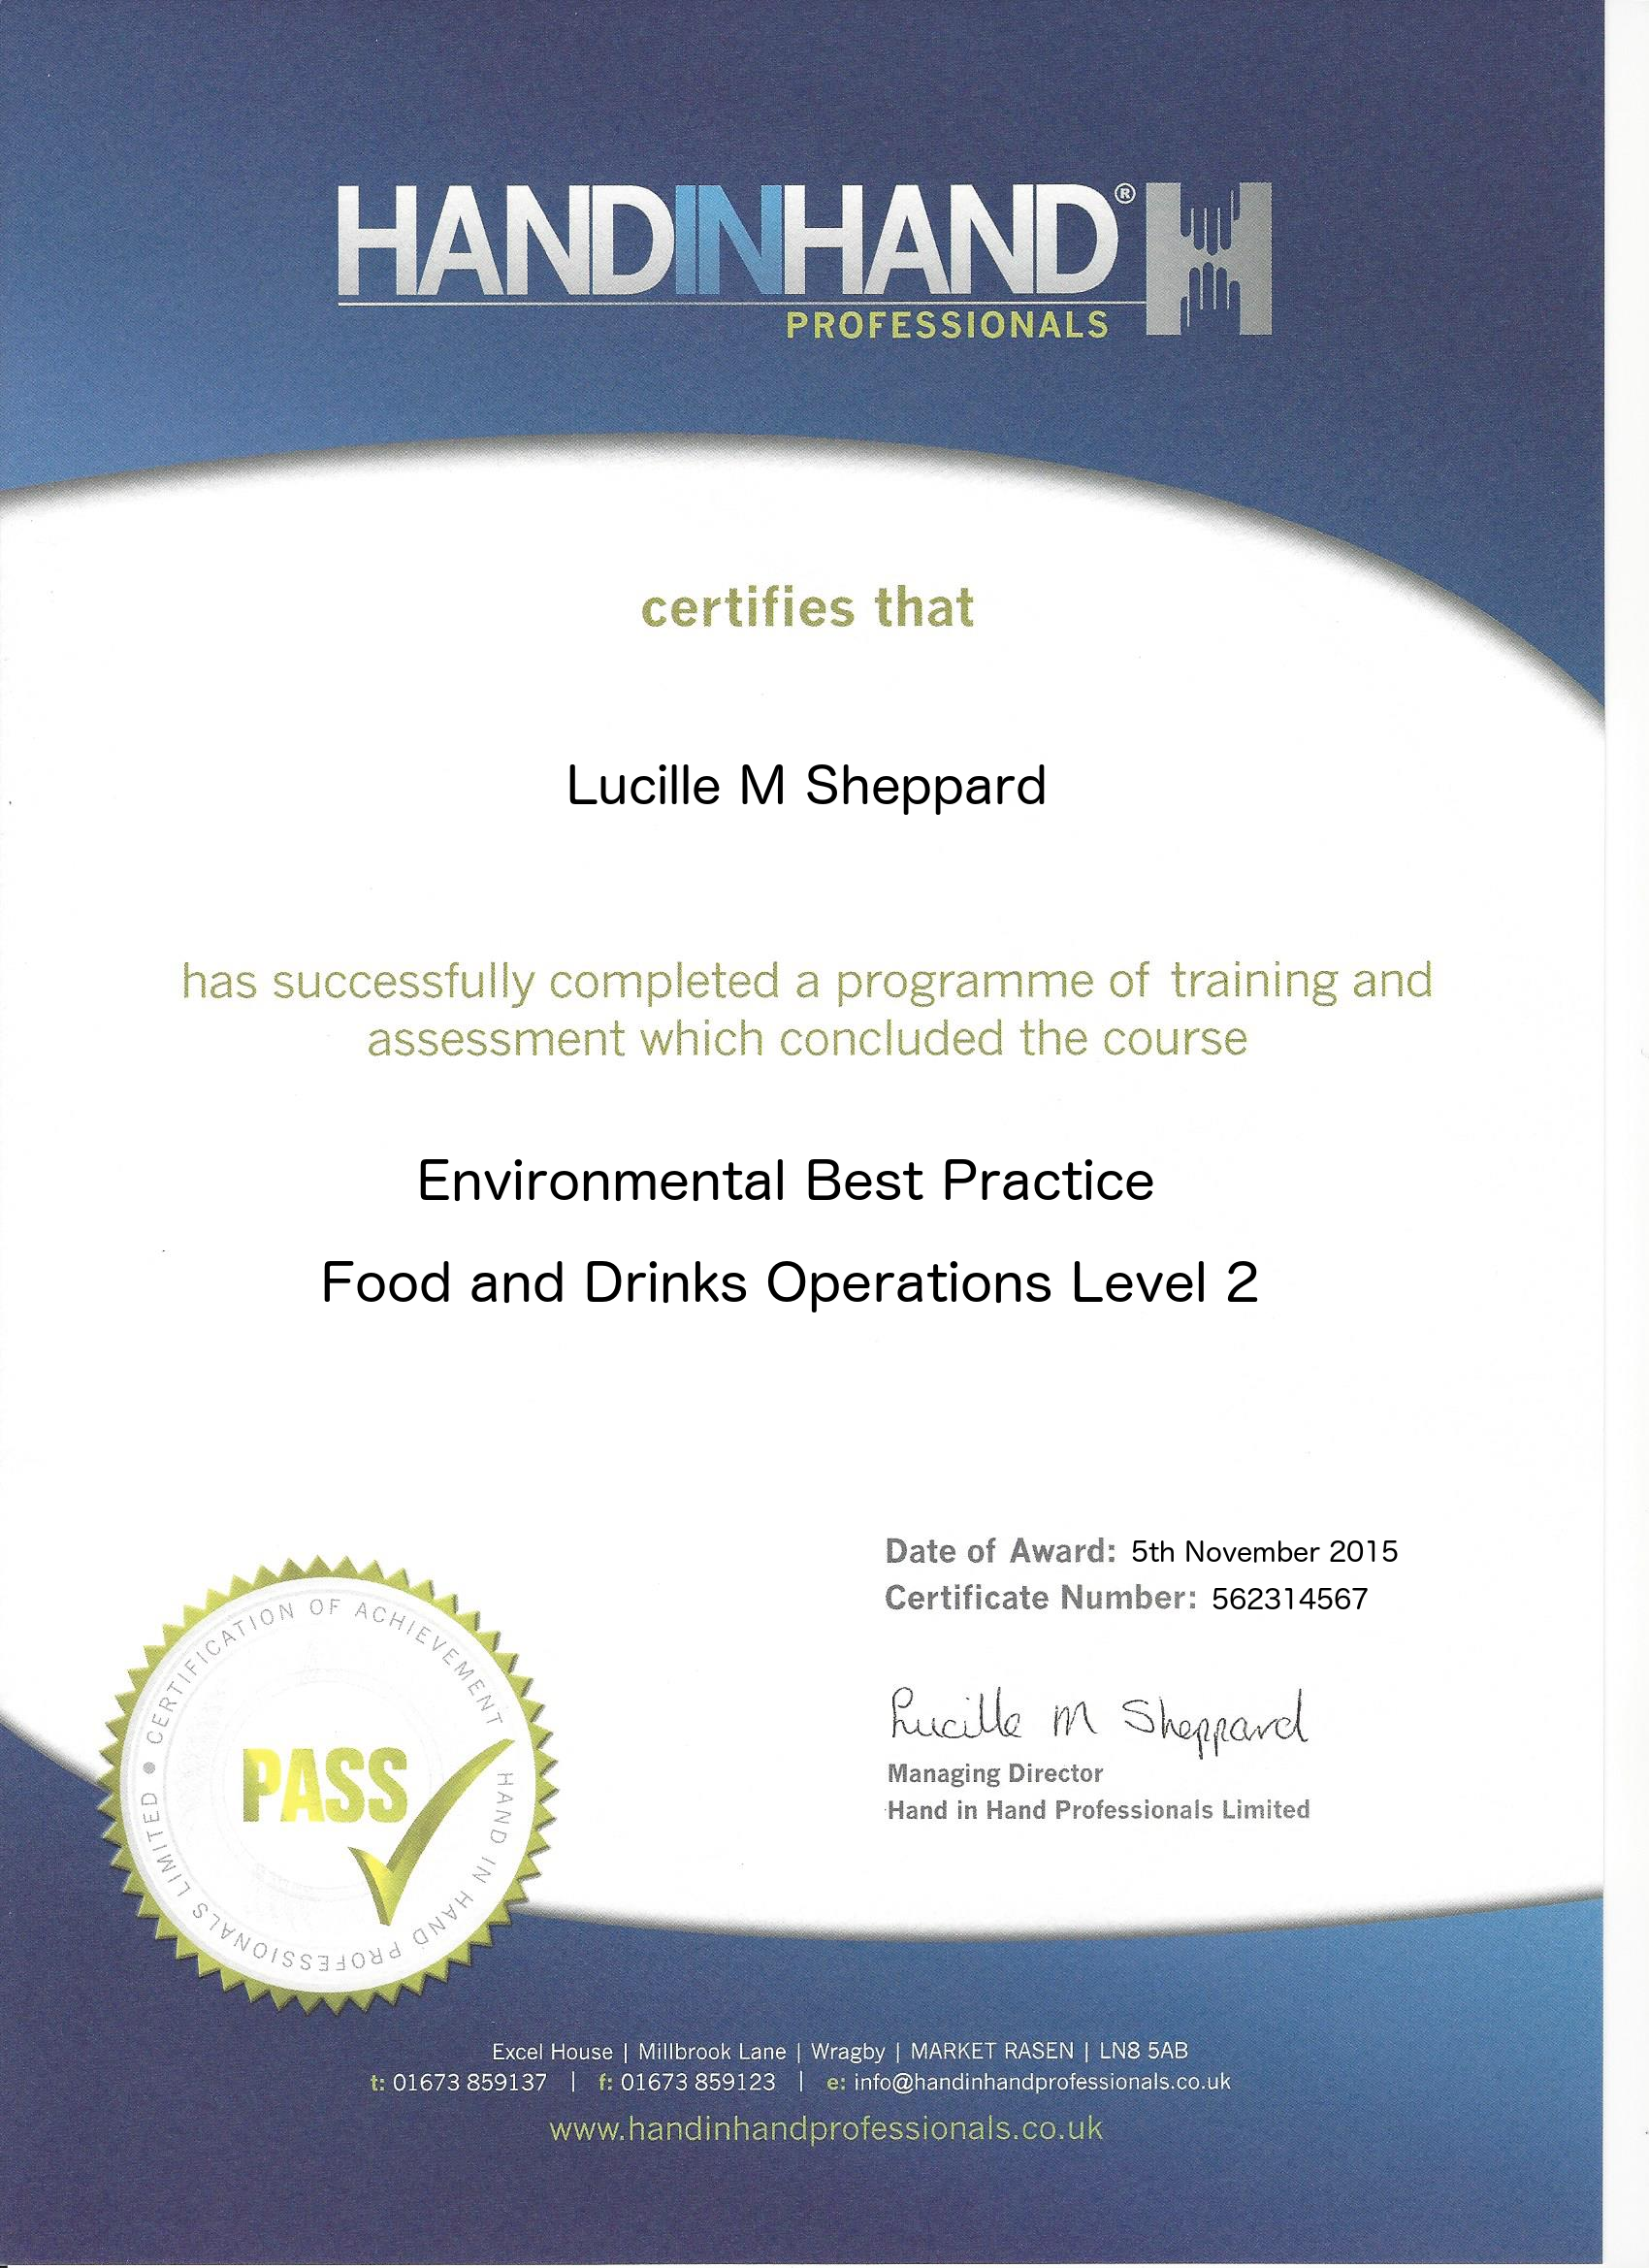 environmental best practice food and drink level 2 course certificate